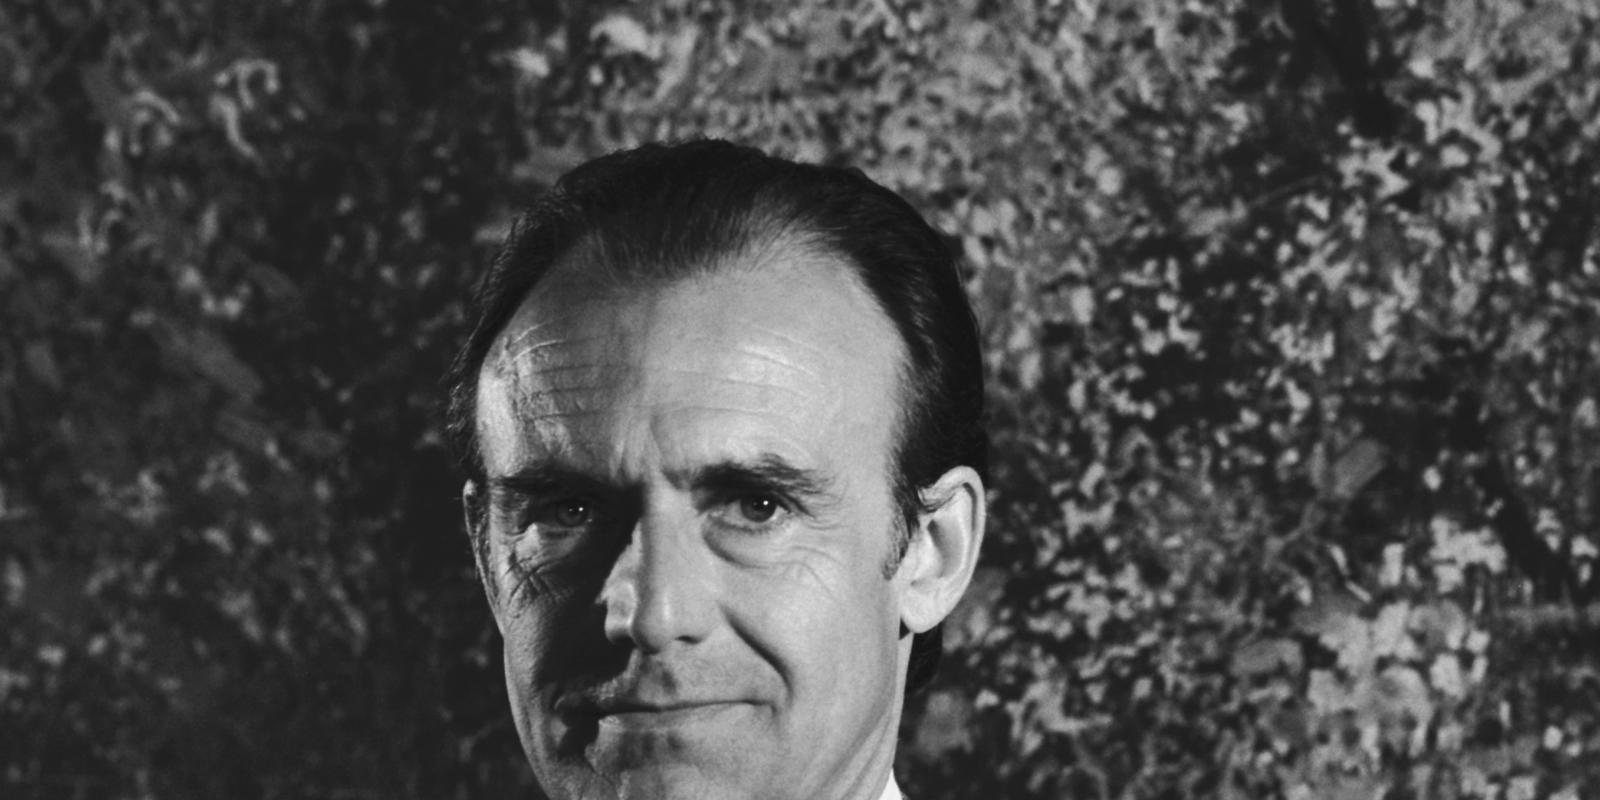 little house on the prairie actor richard bull dies, aged 89